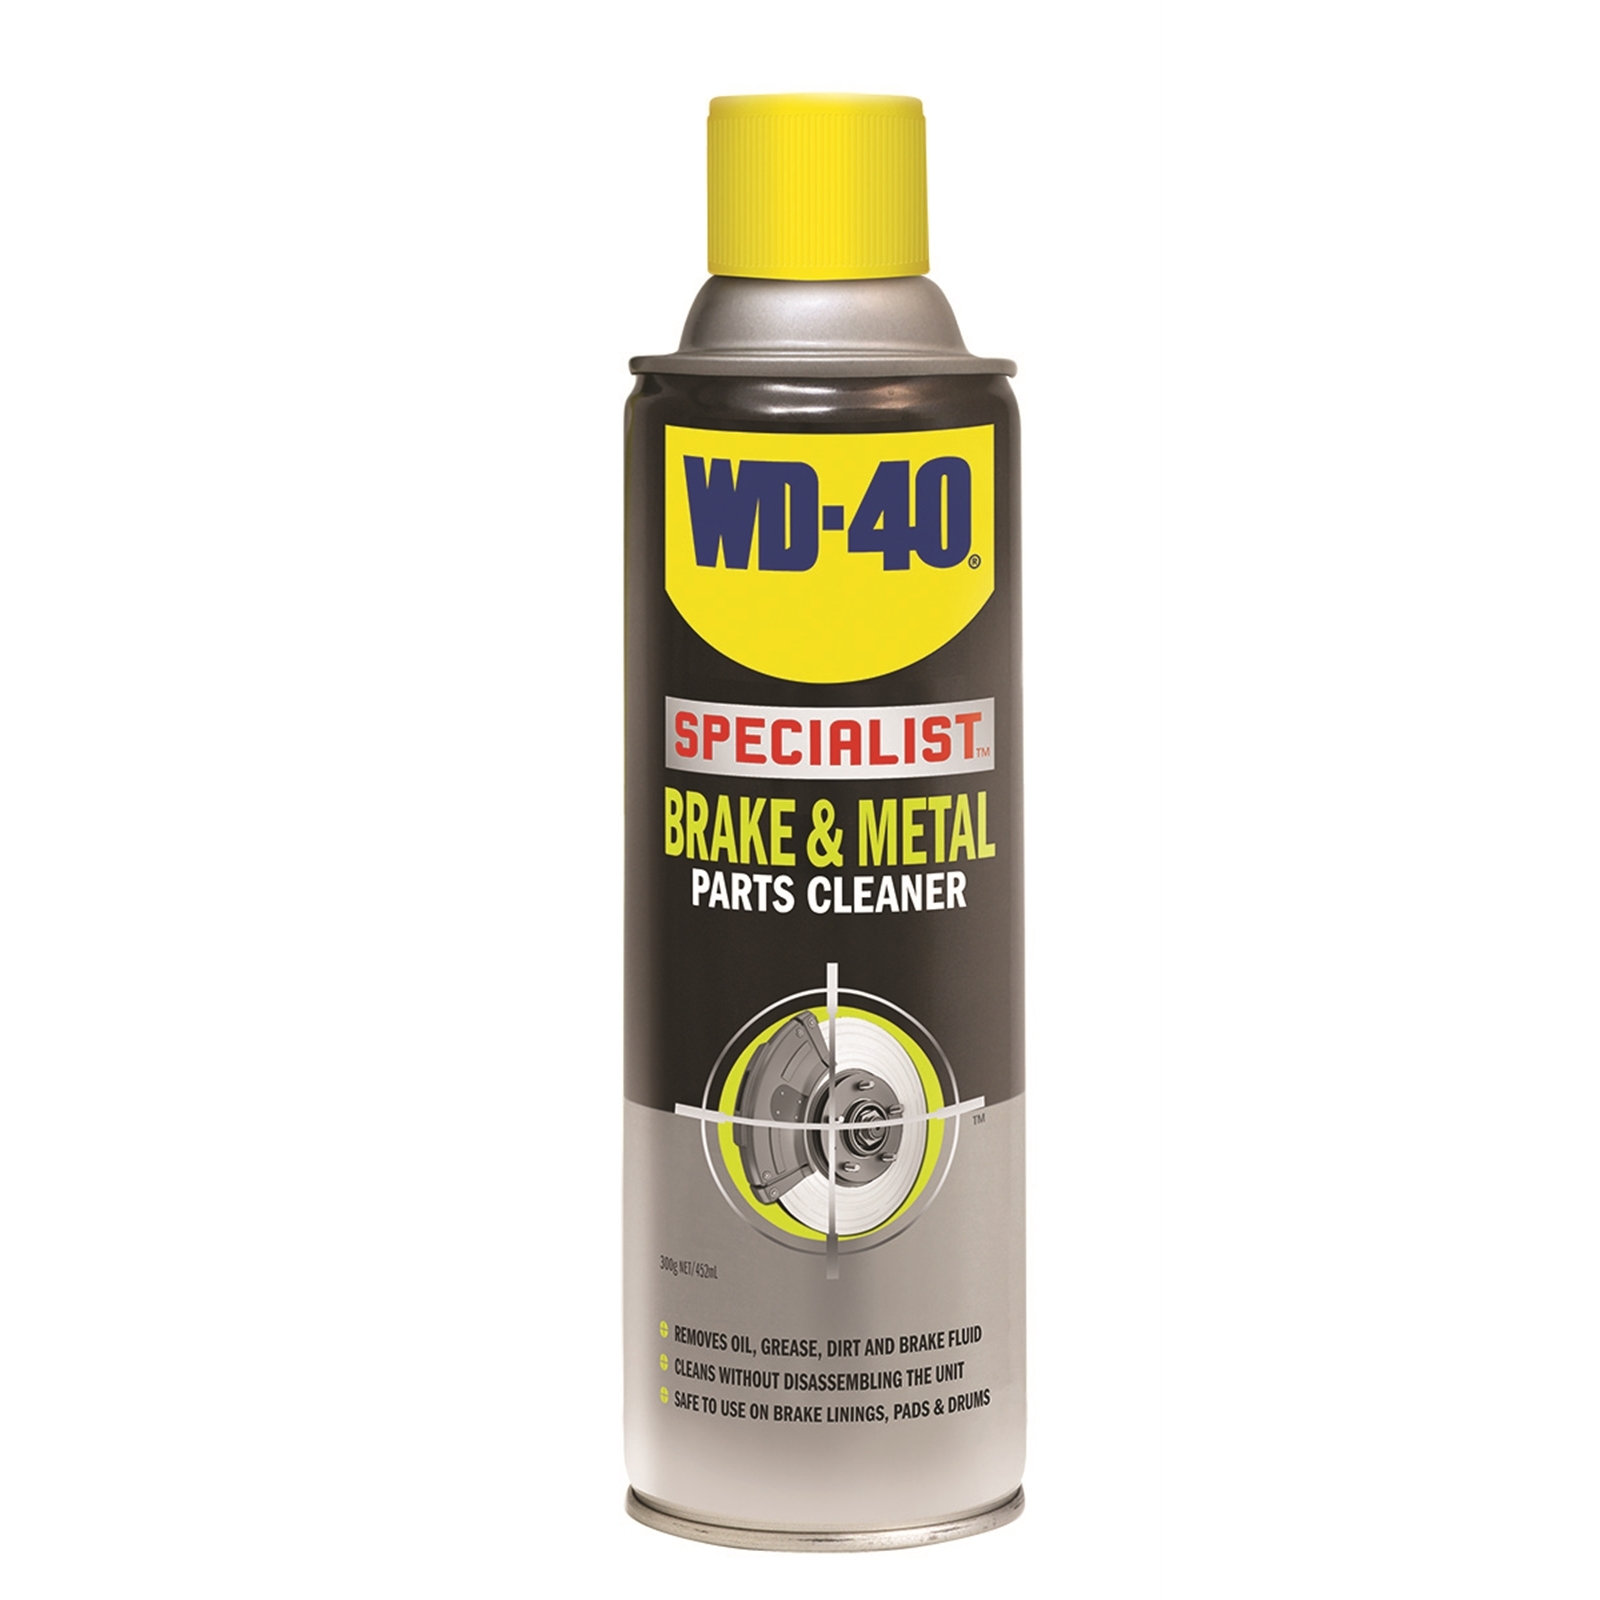 WD-40 Specialist Brake & Metal Parts Cleaner 400g Clear